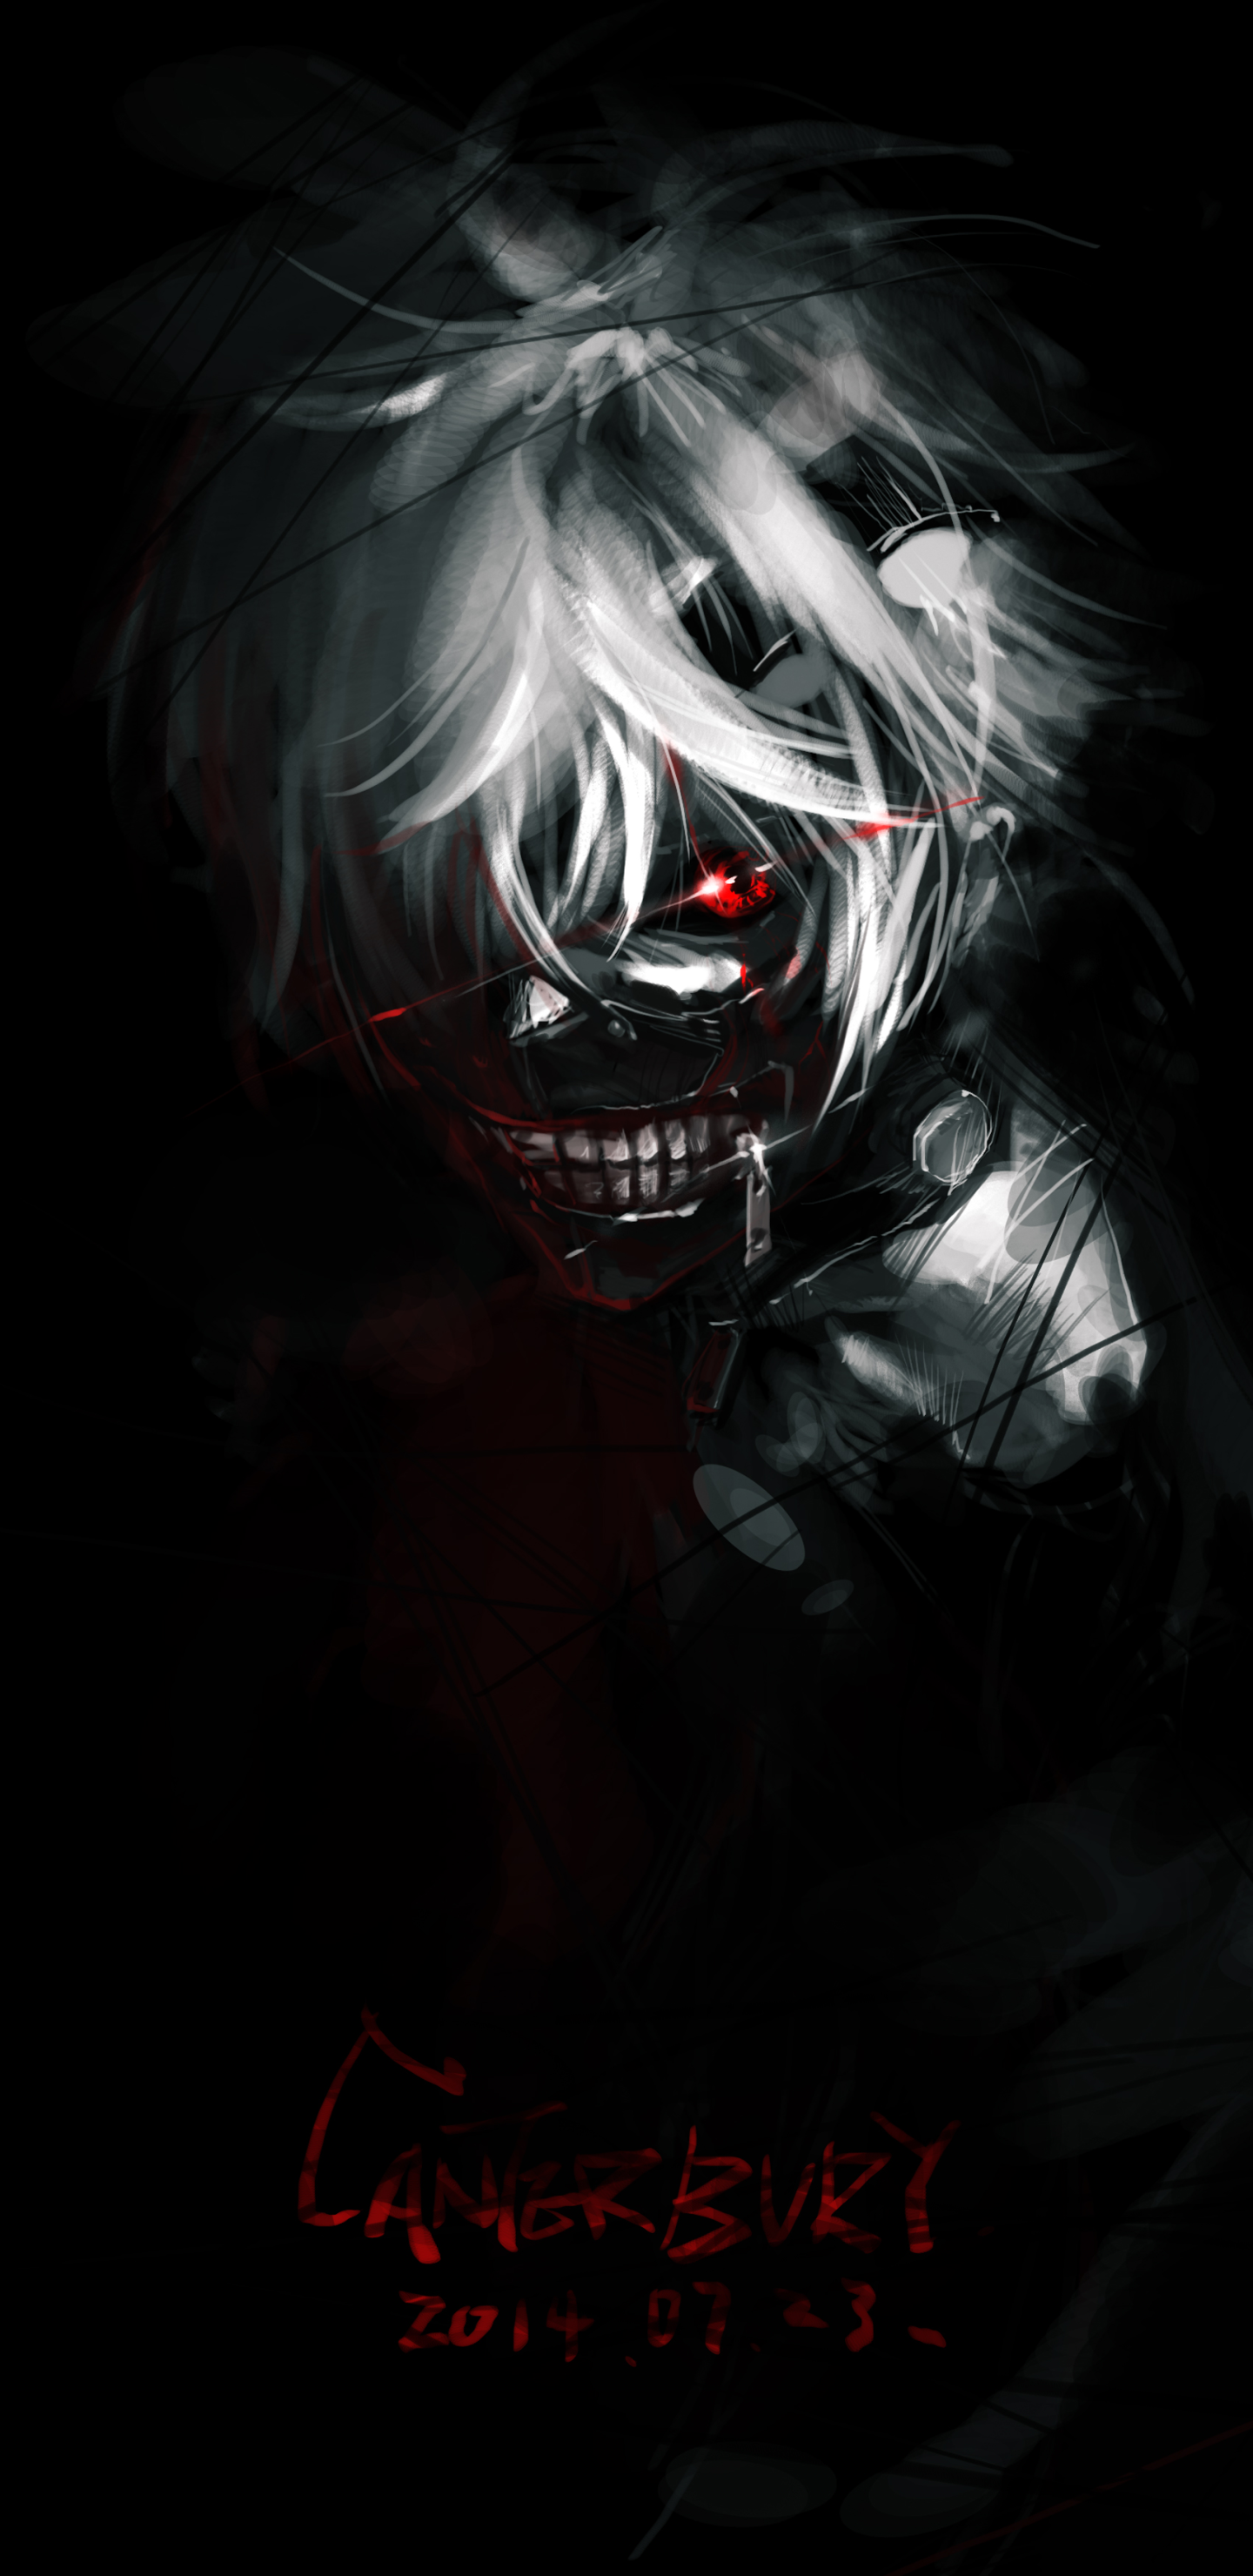 1440x2960 Anime Wallpapers Top Free 1440x2960 Anime Backgrounds Wallpaperaccess